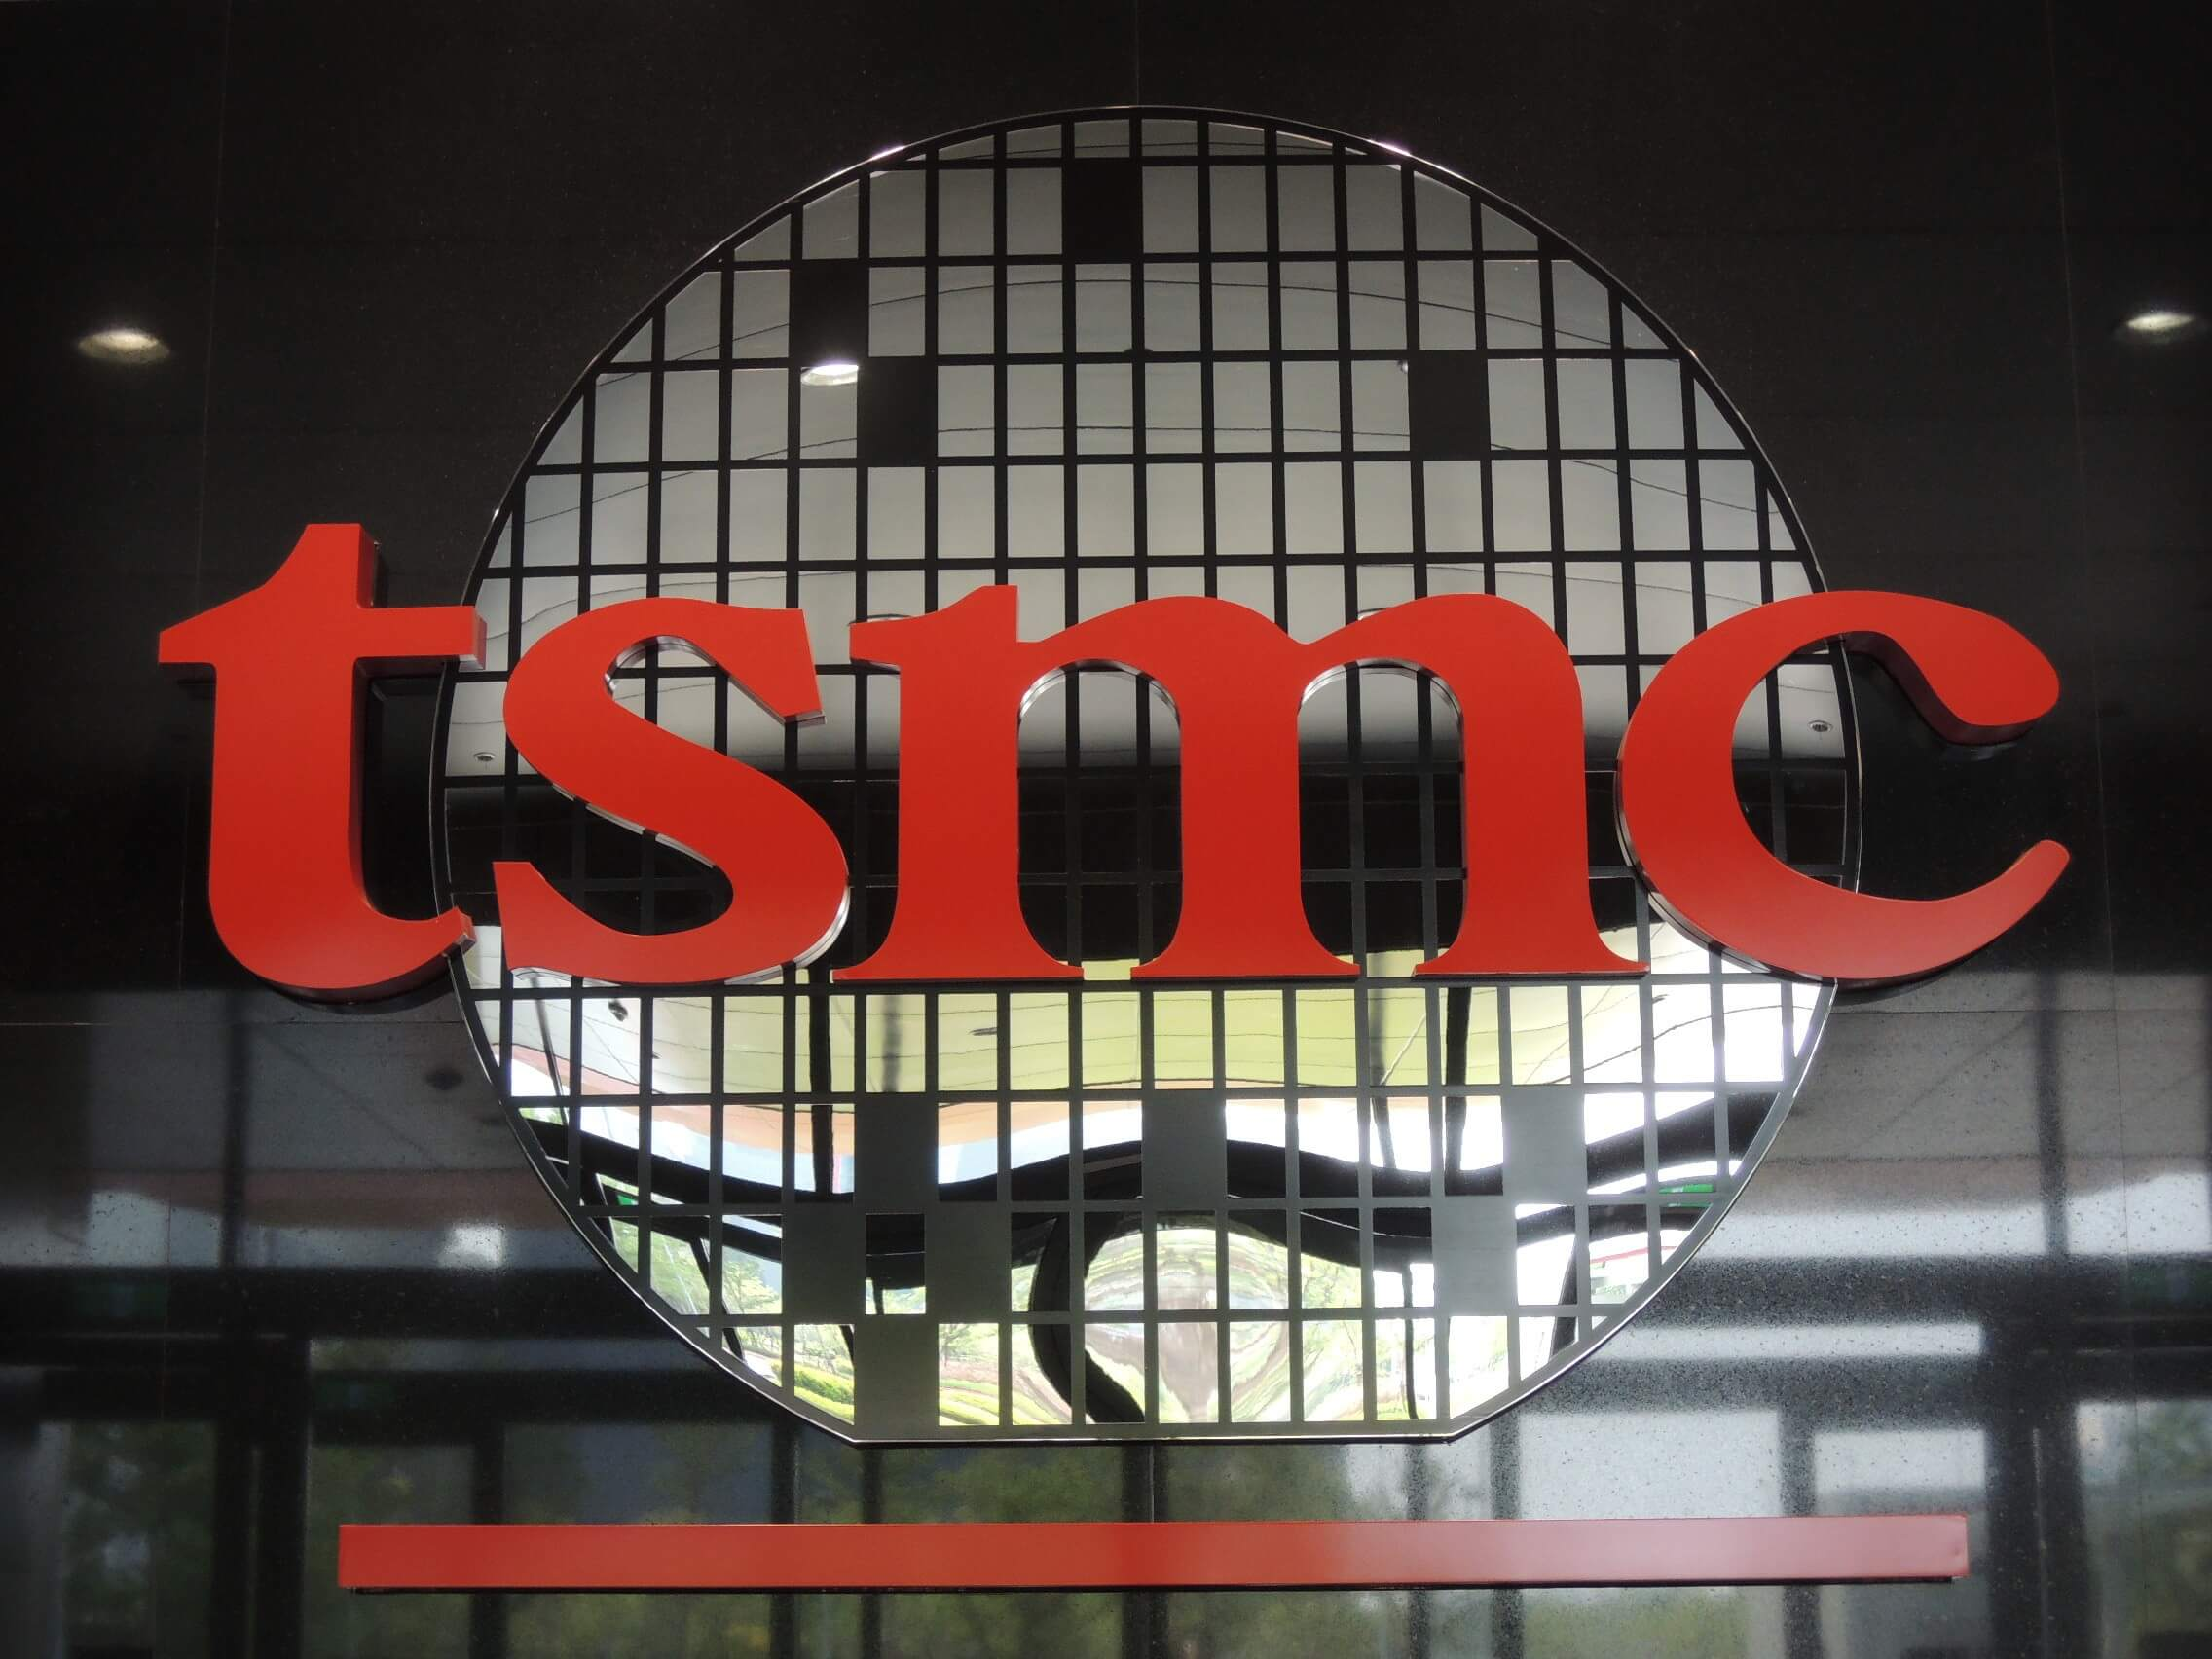 IPhone Supplier TSMC Shut Down Several Factories After Computer Virus Hits Systems